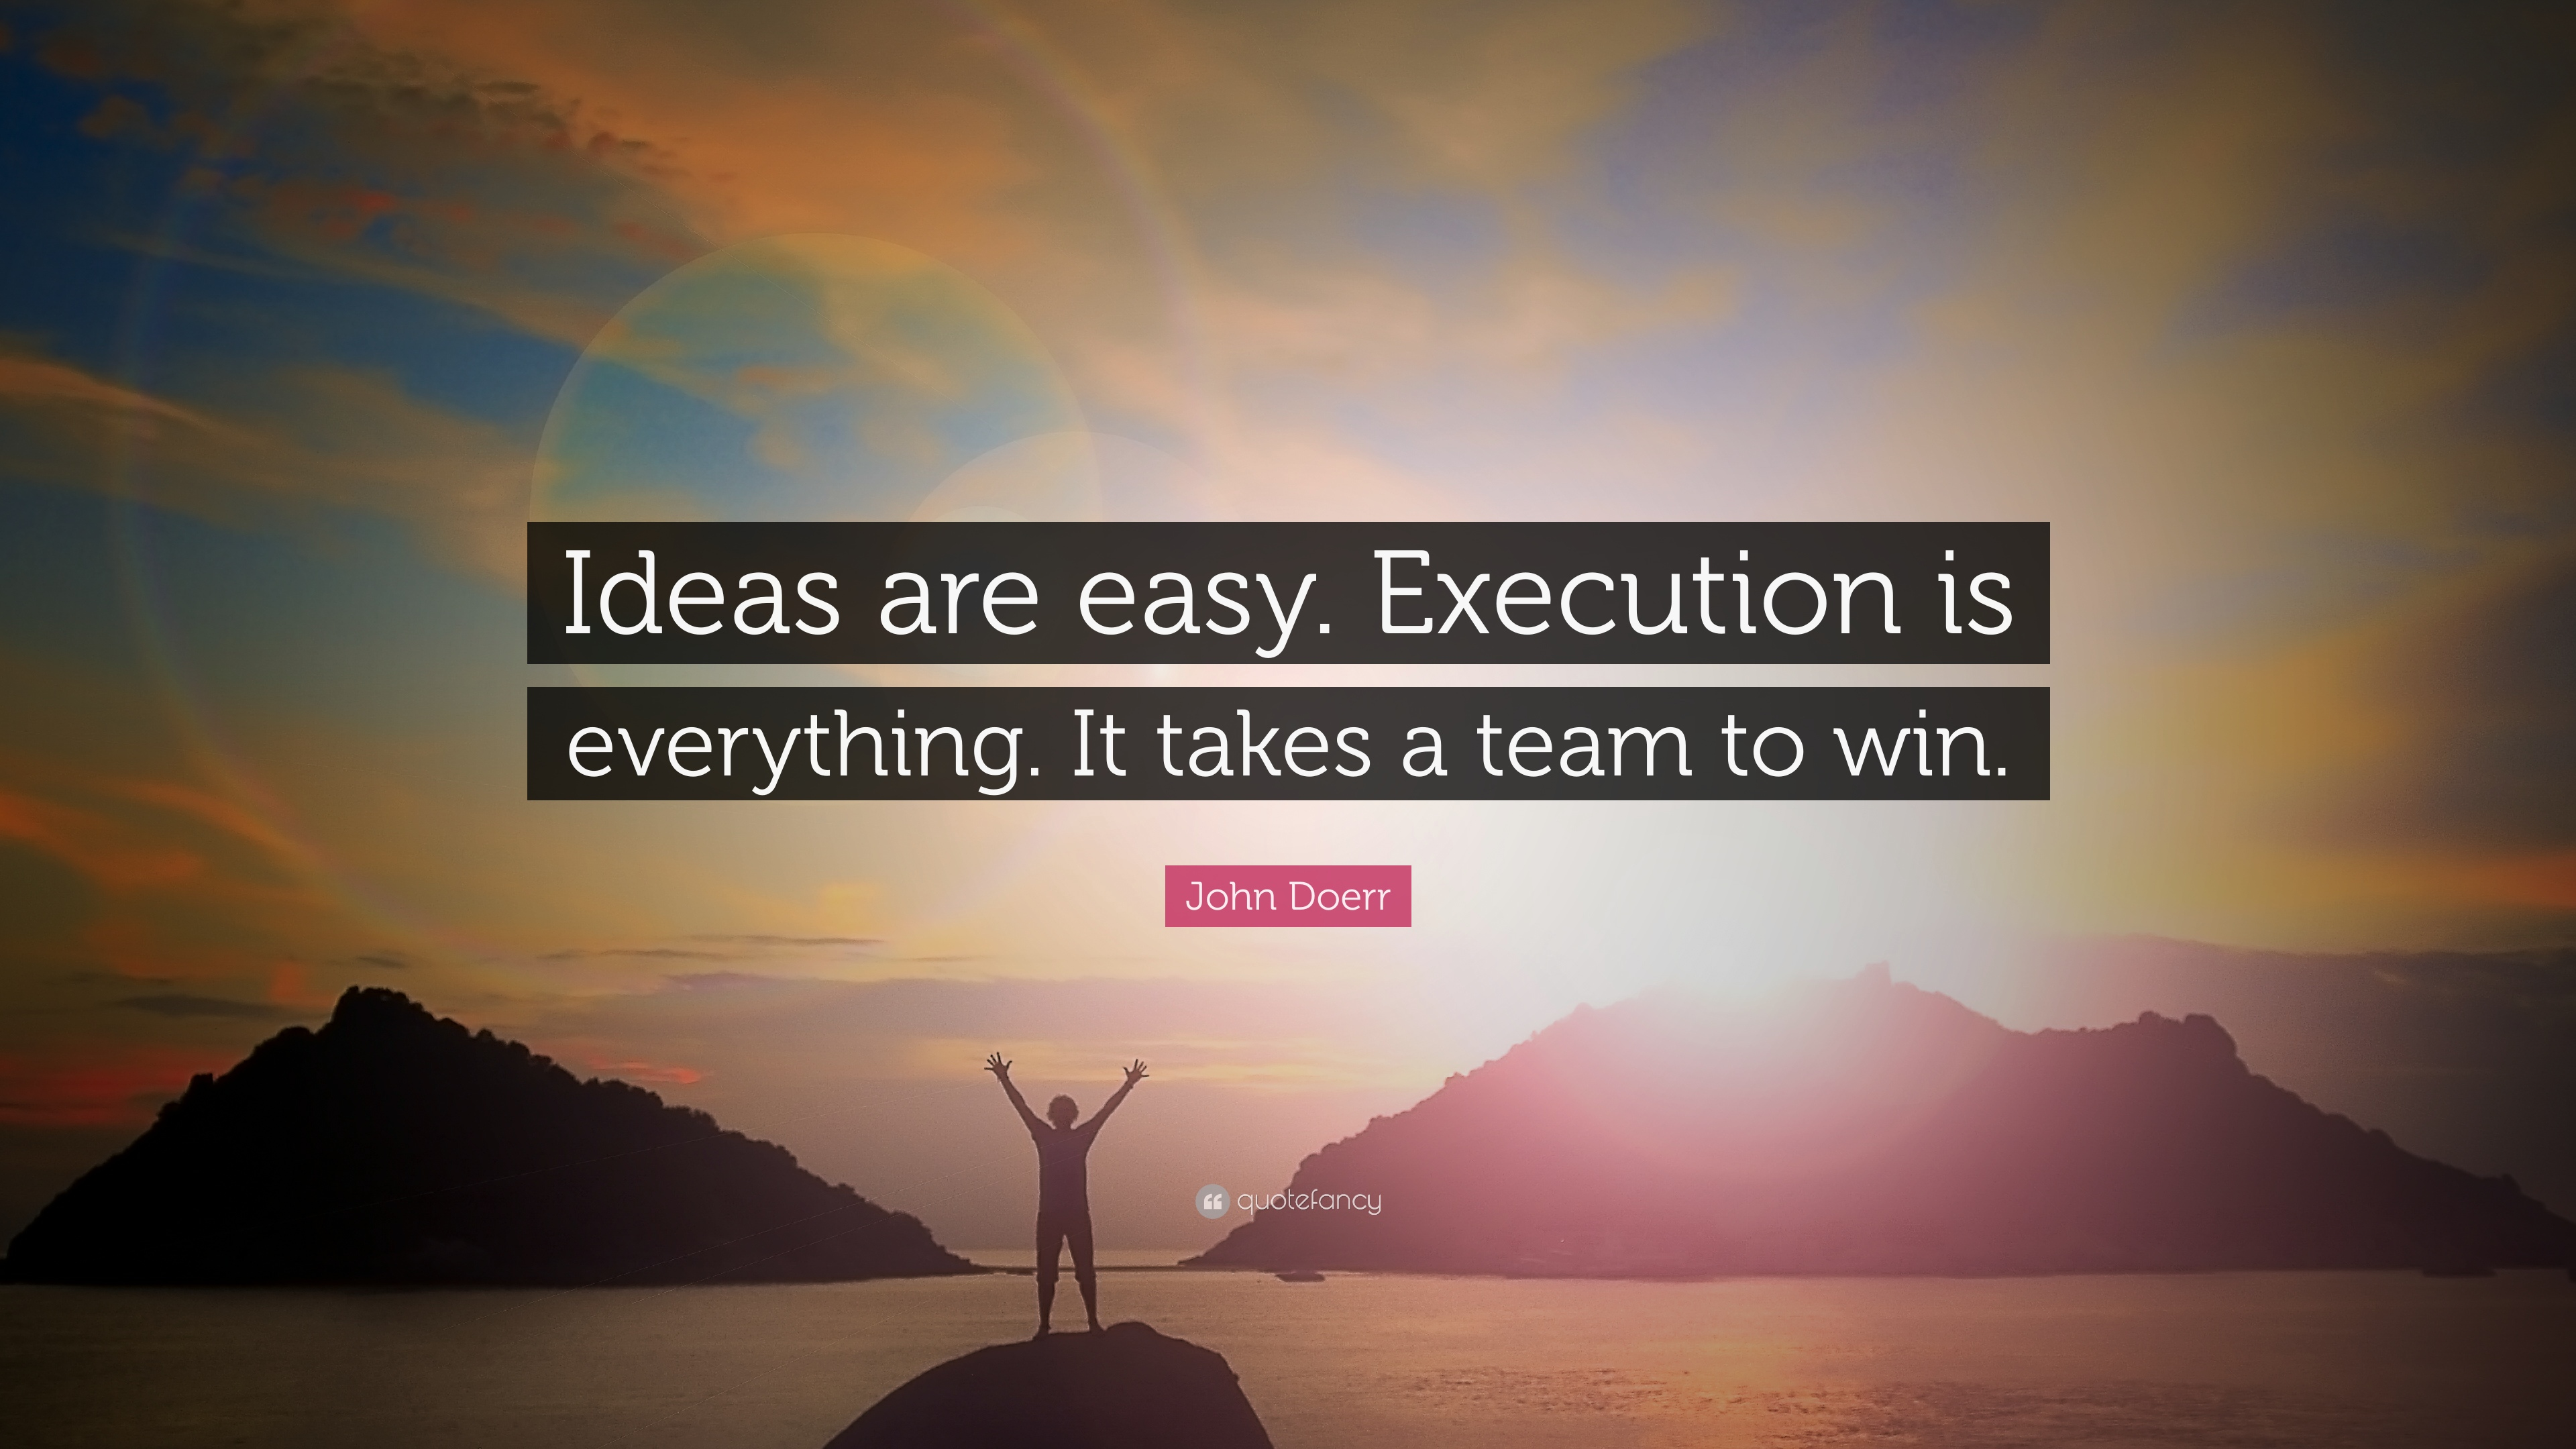 John Doerr Quote \u201cIdeas are easy. Execution is everything